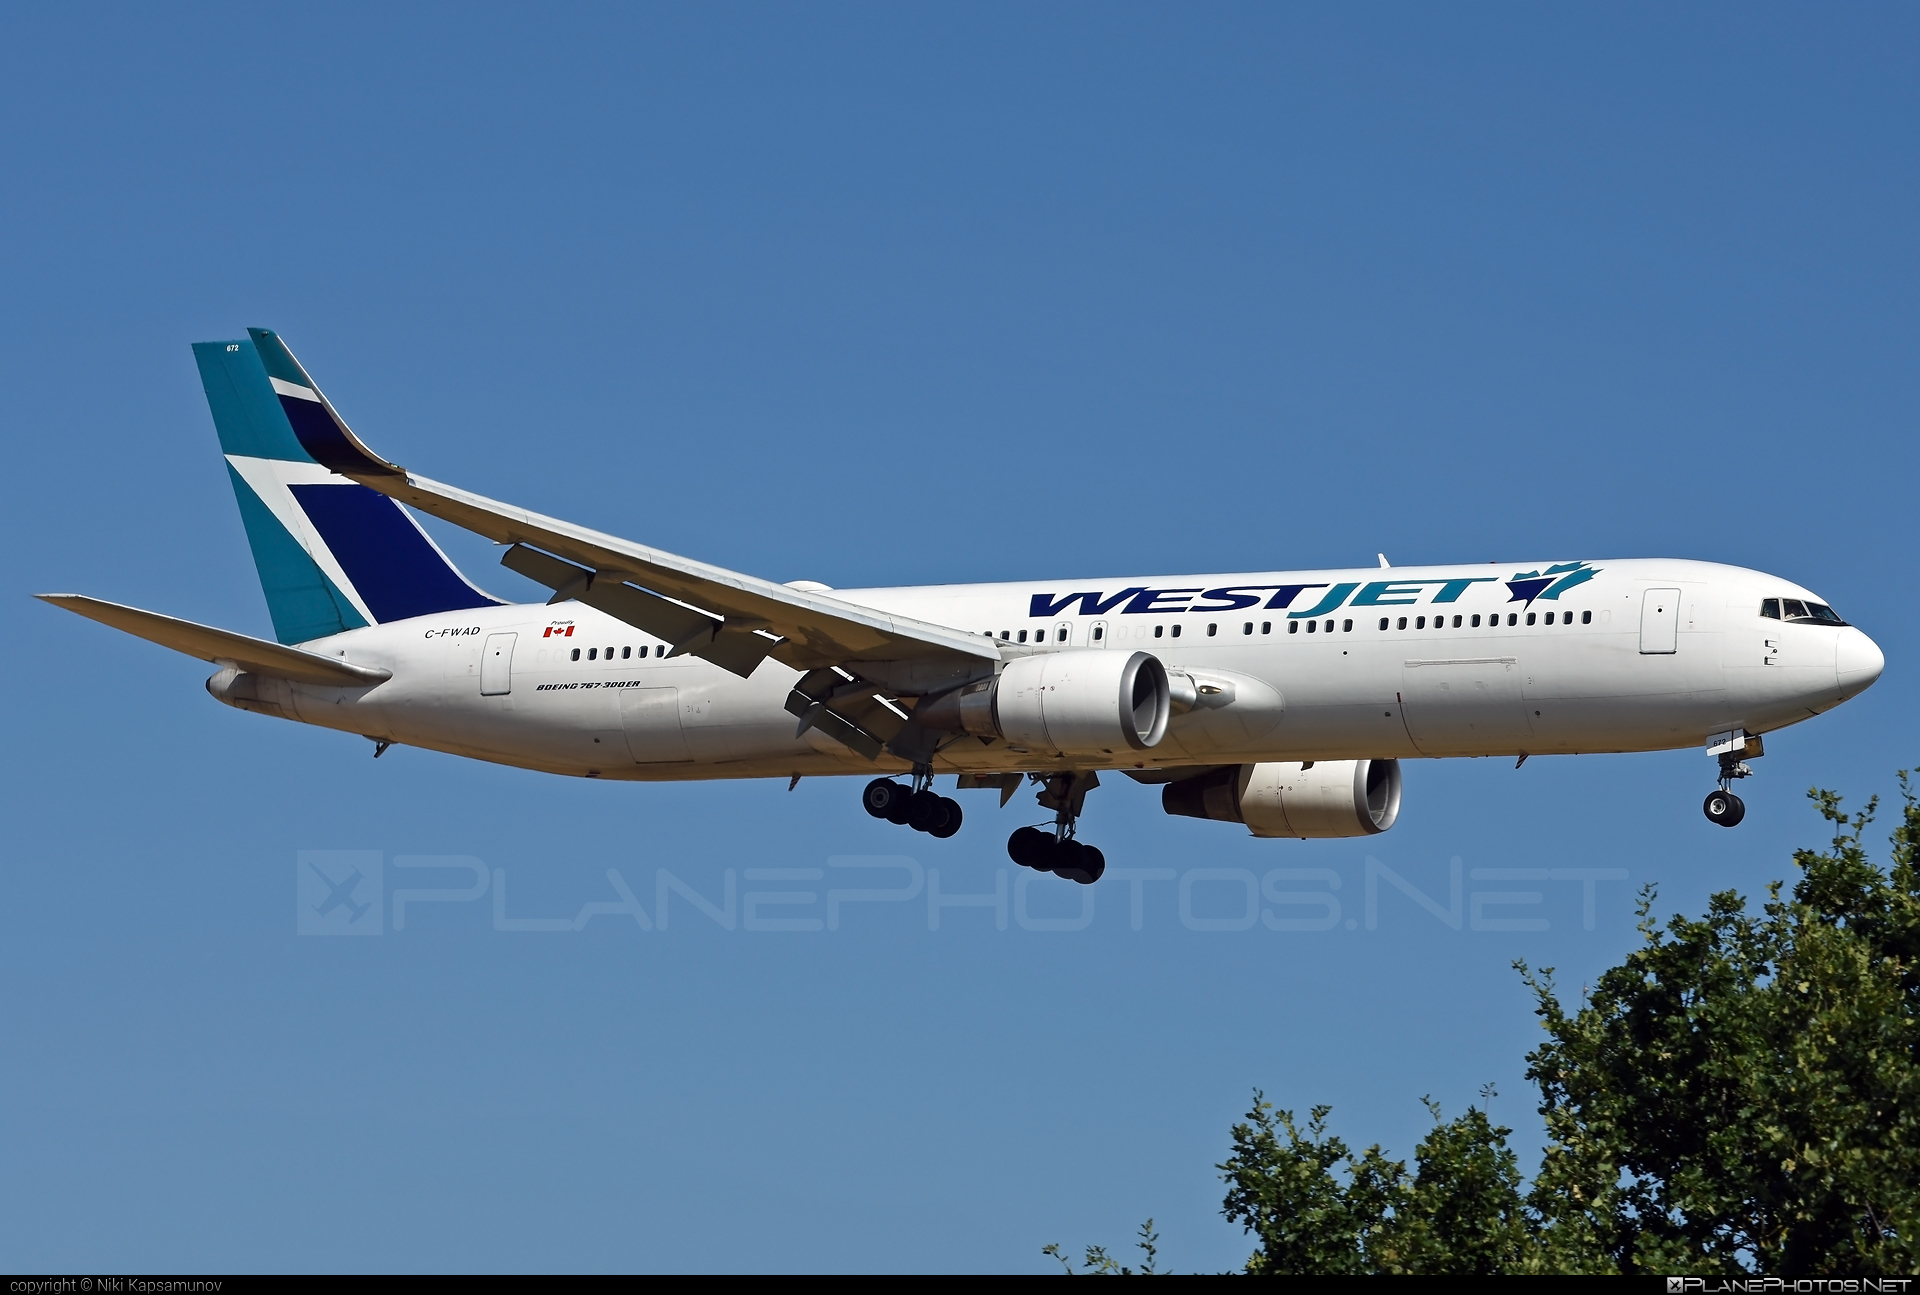 Boeing 767-300ER - C-FWAD operated by WestJet Airlines #b767 #b767er #boeing #boeing767